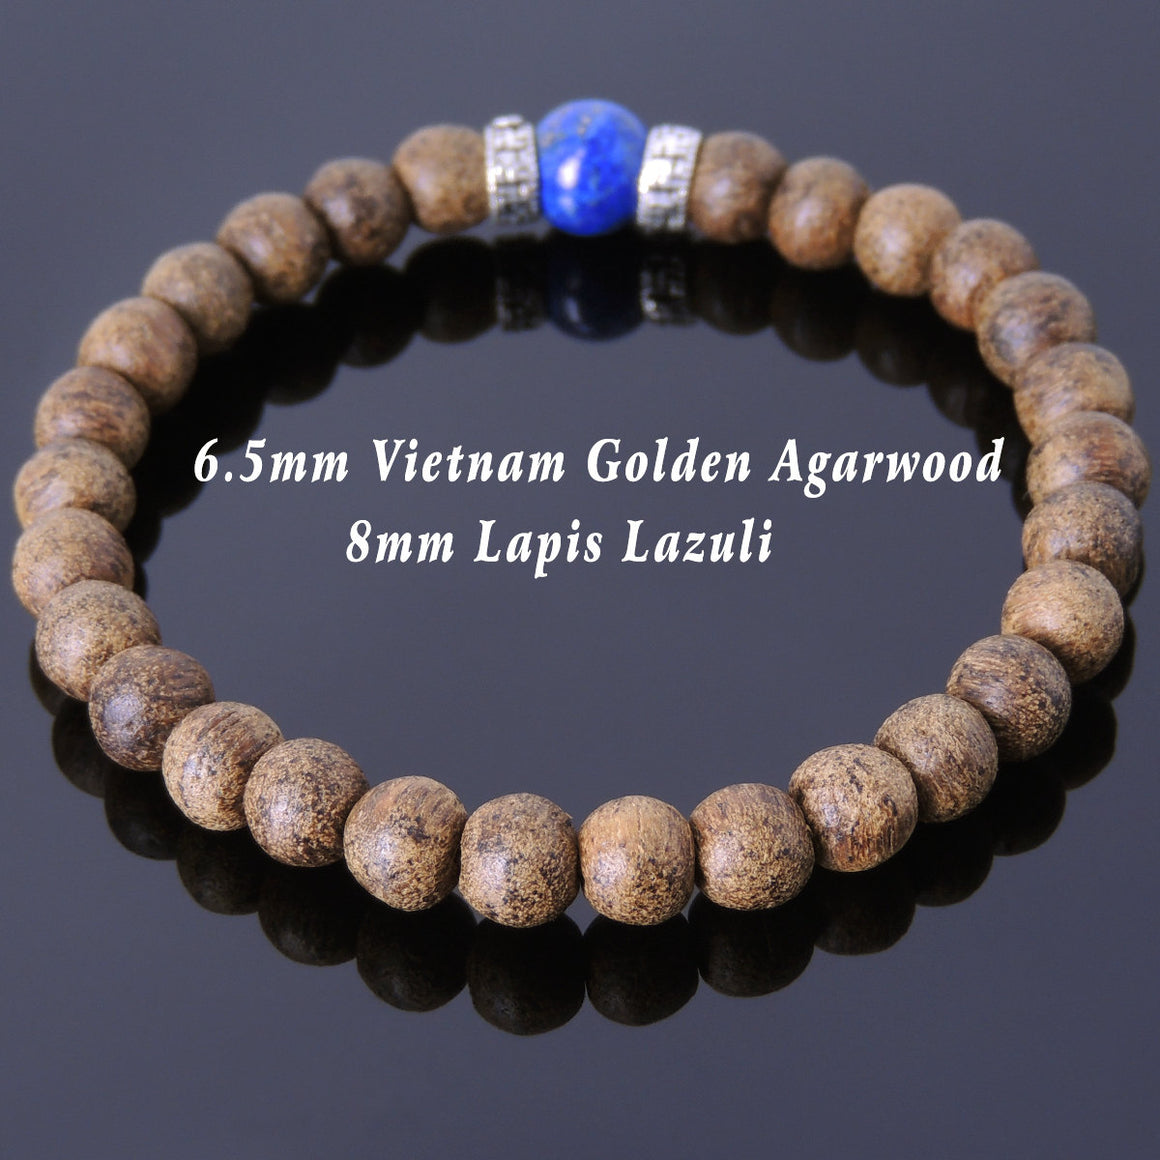 Golden Agarwood & Lapis Lazuli Meditation Bracelet with S925 Sterling Silver Buddhism Protection Spacers - Handmade by Gem & Silver BR682